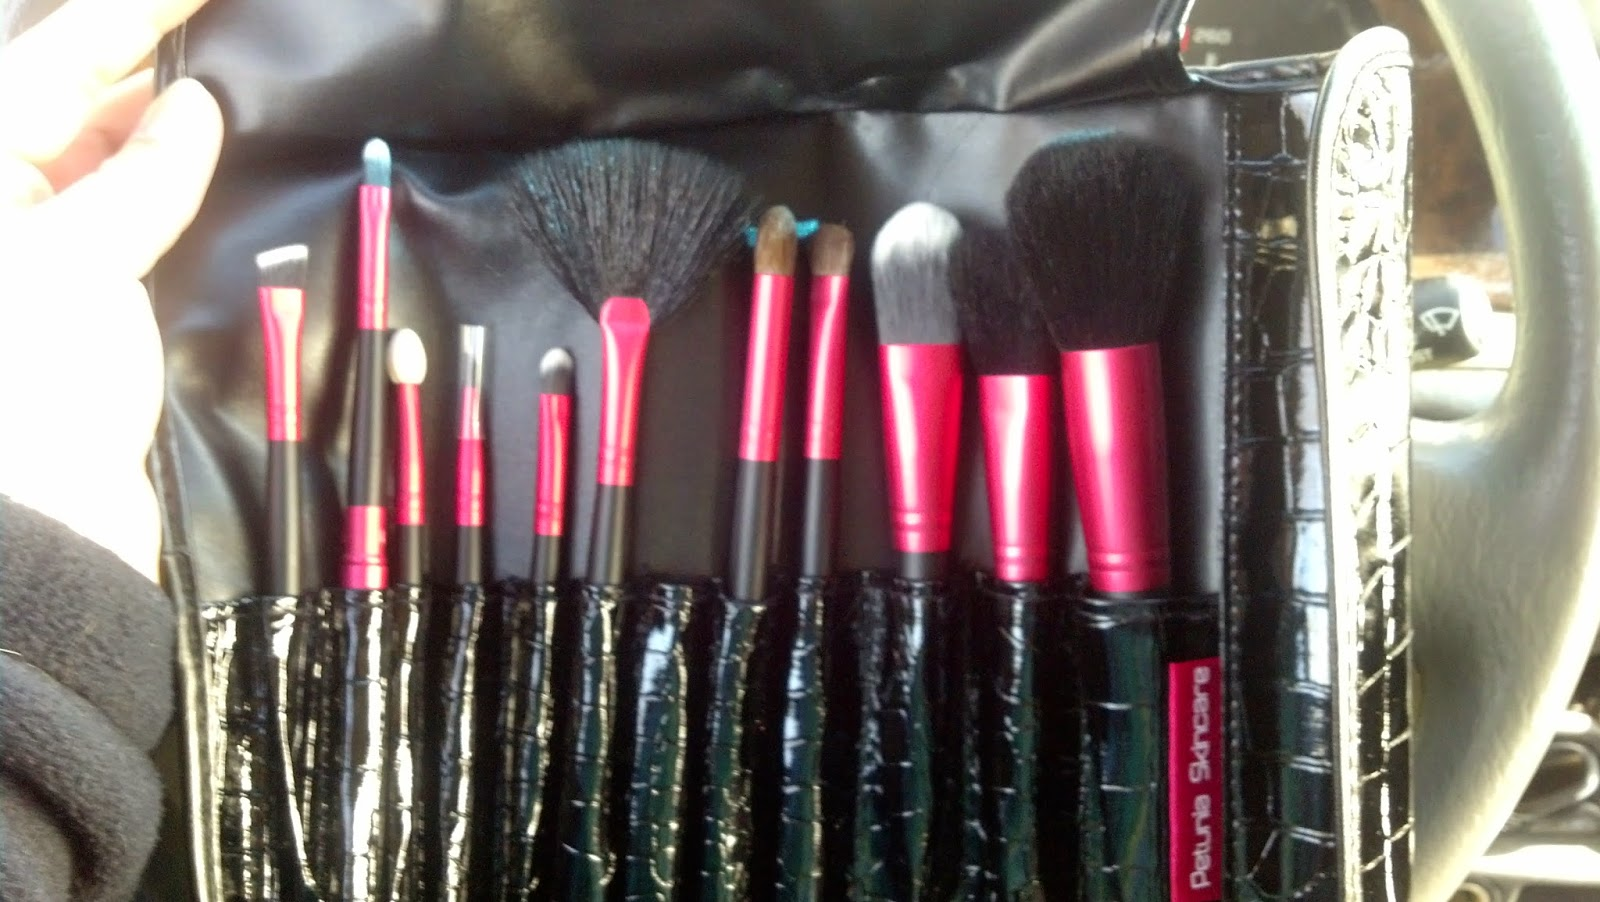 Petunia Skincare Professional 12 Set Makeup Brush Kit Review